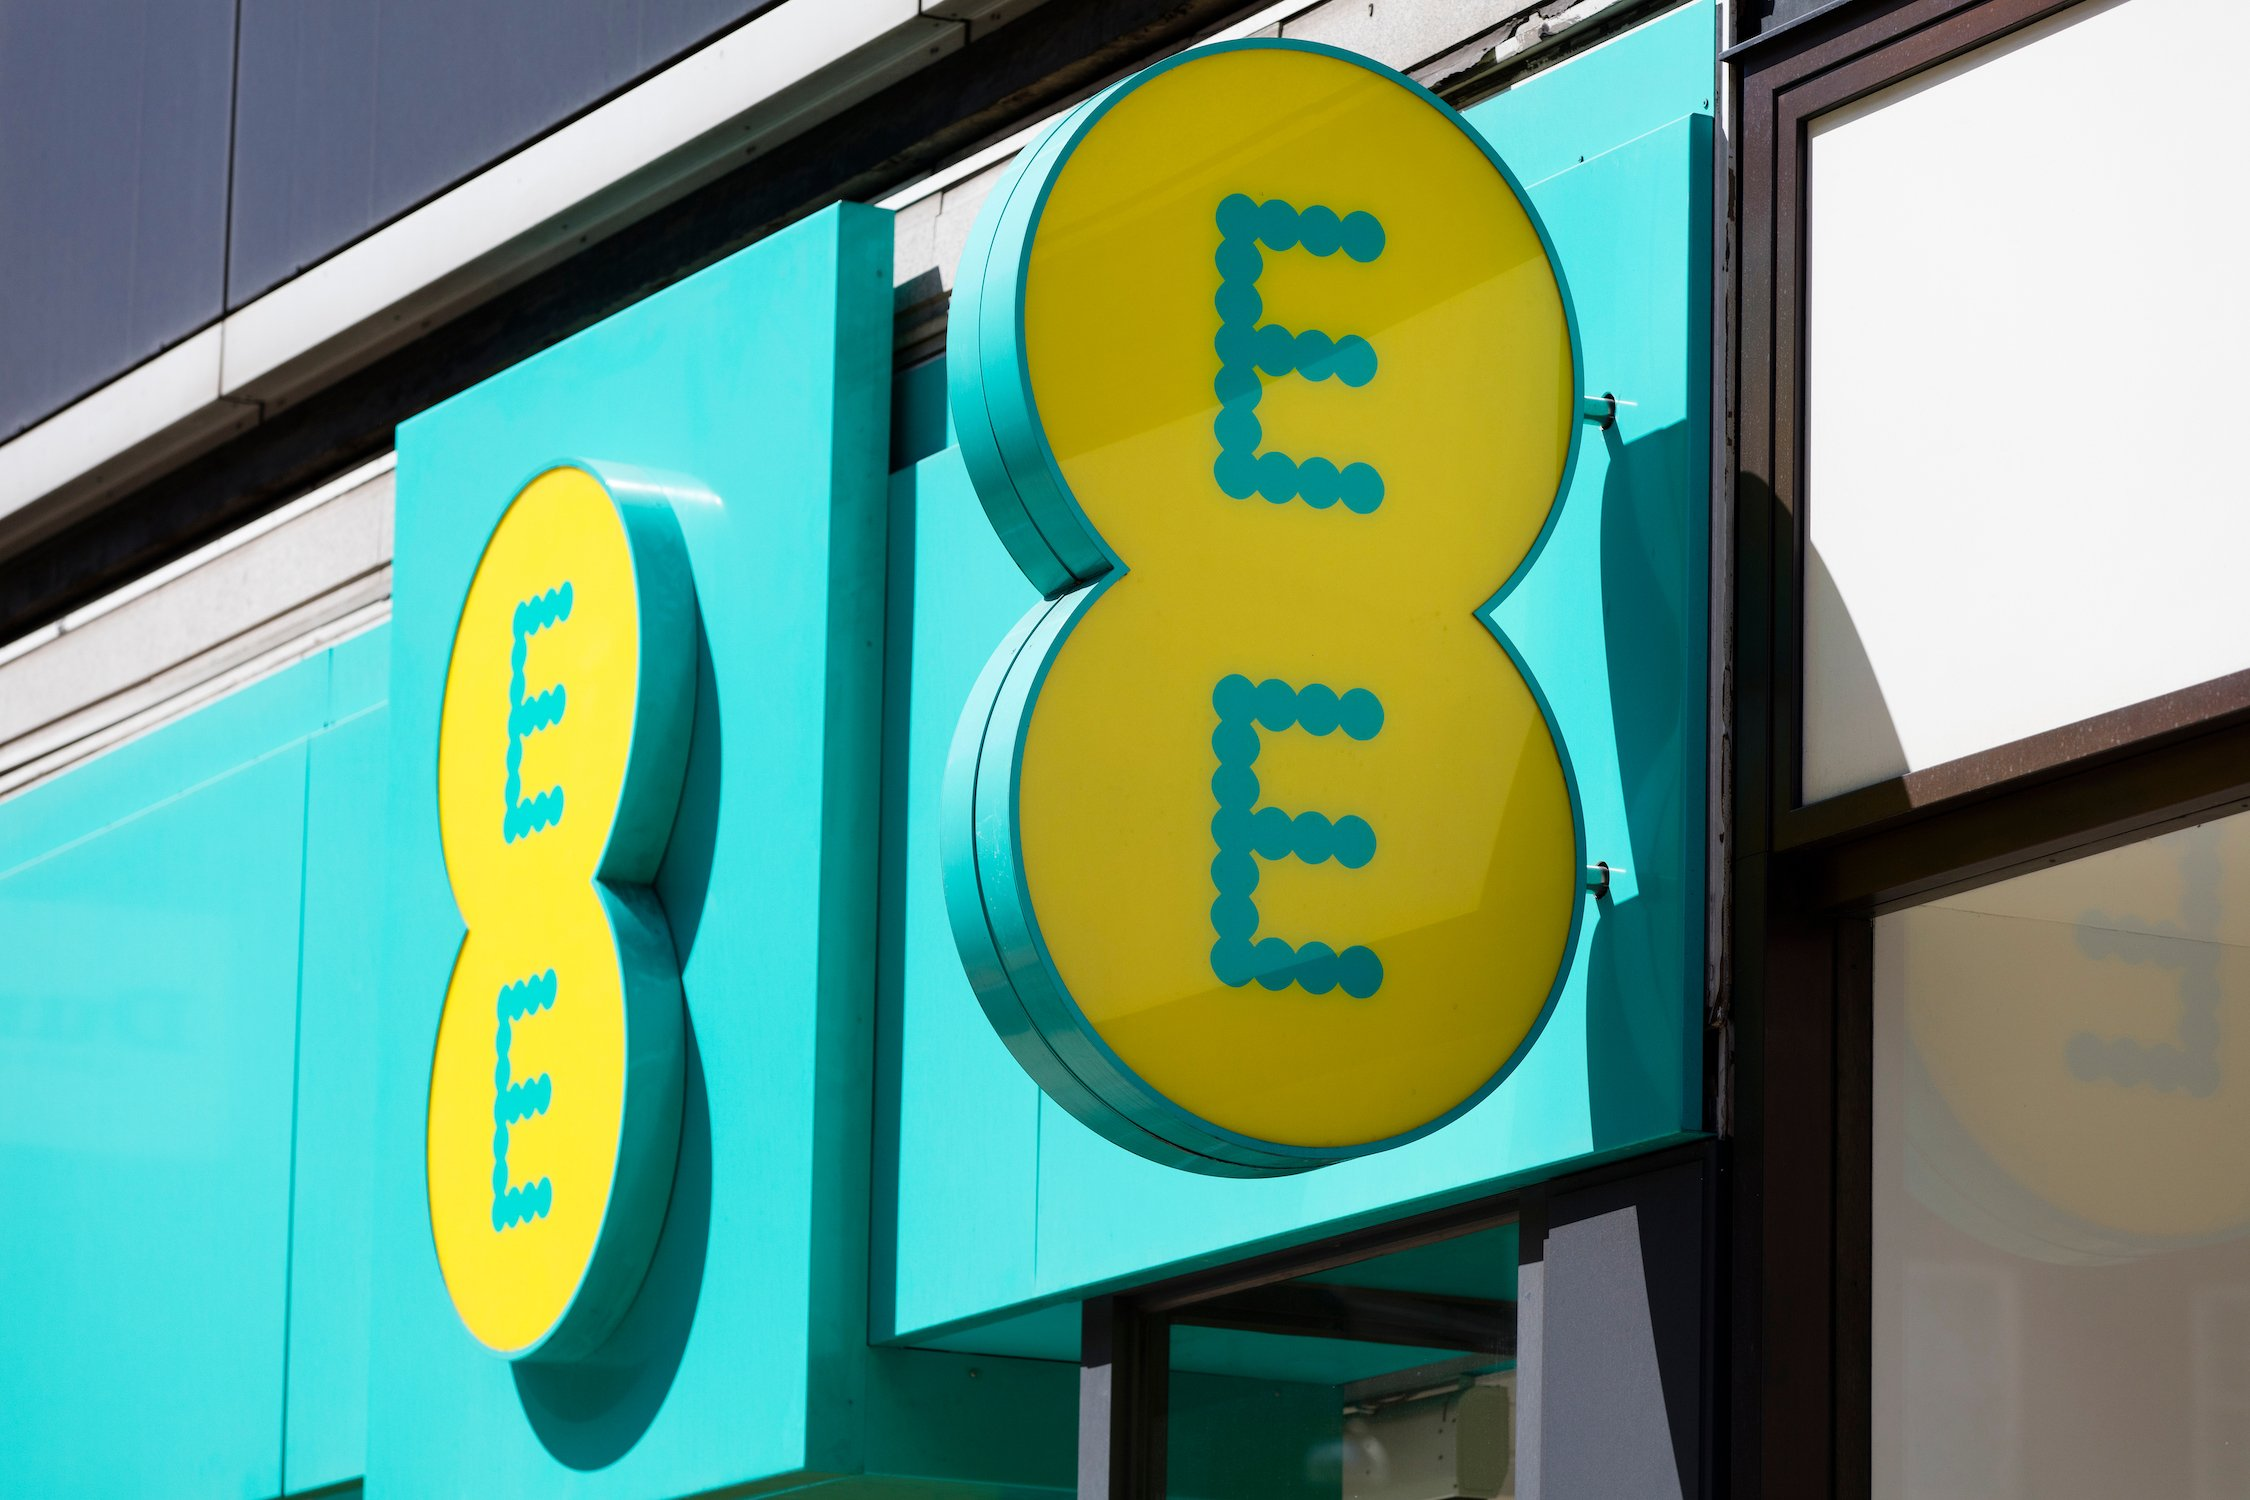 Is EE down? Four major networks are reportedly suffering outages right now, including EE